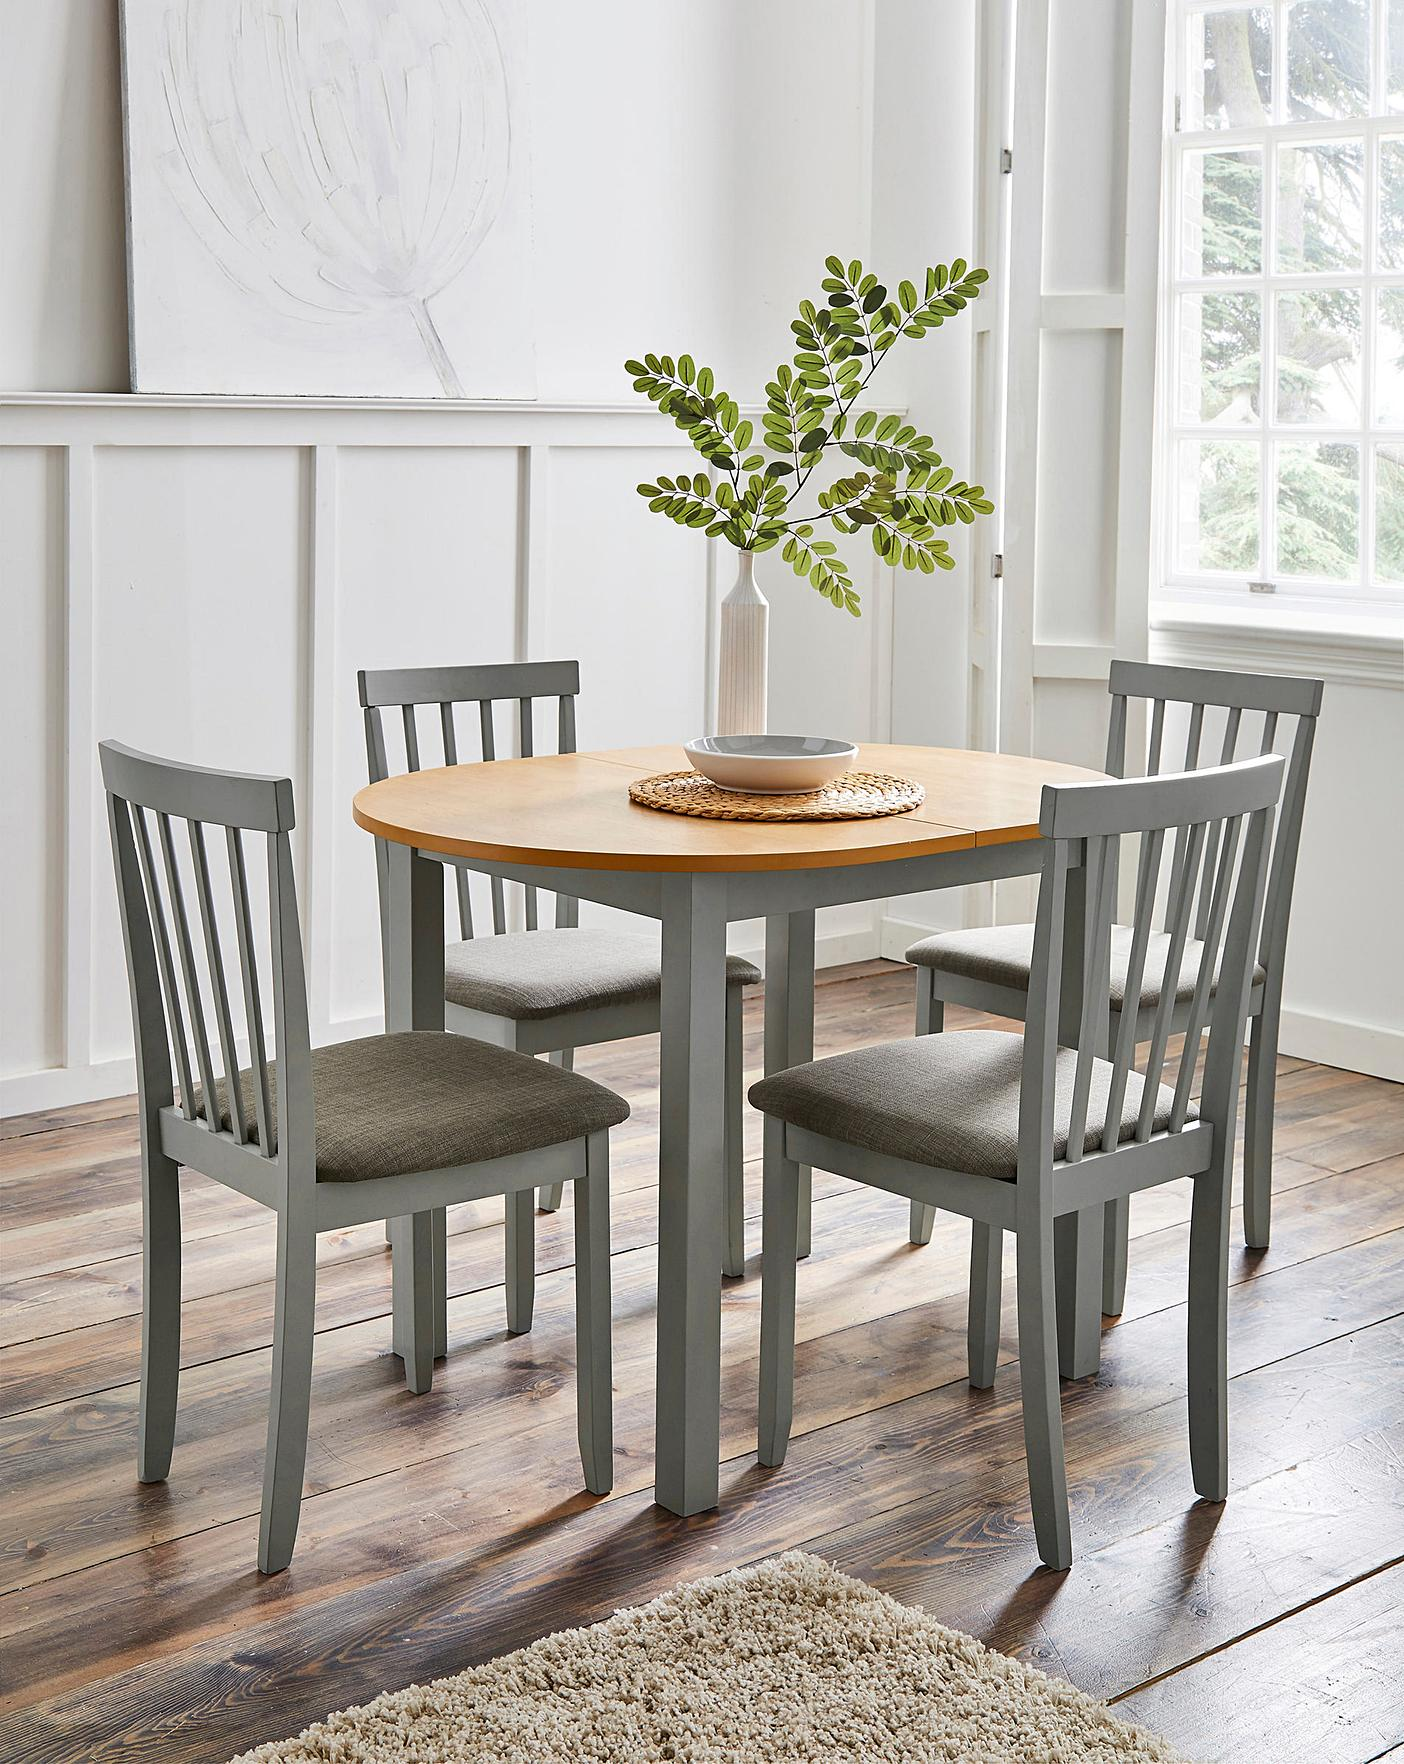 Salcombe Dining Table With 4 Chairs J D Williams